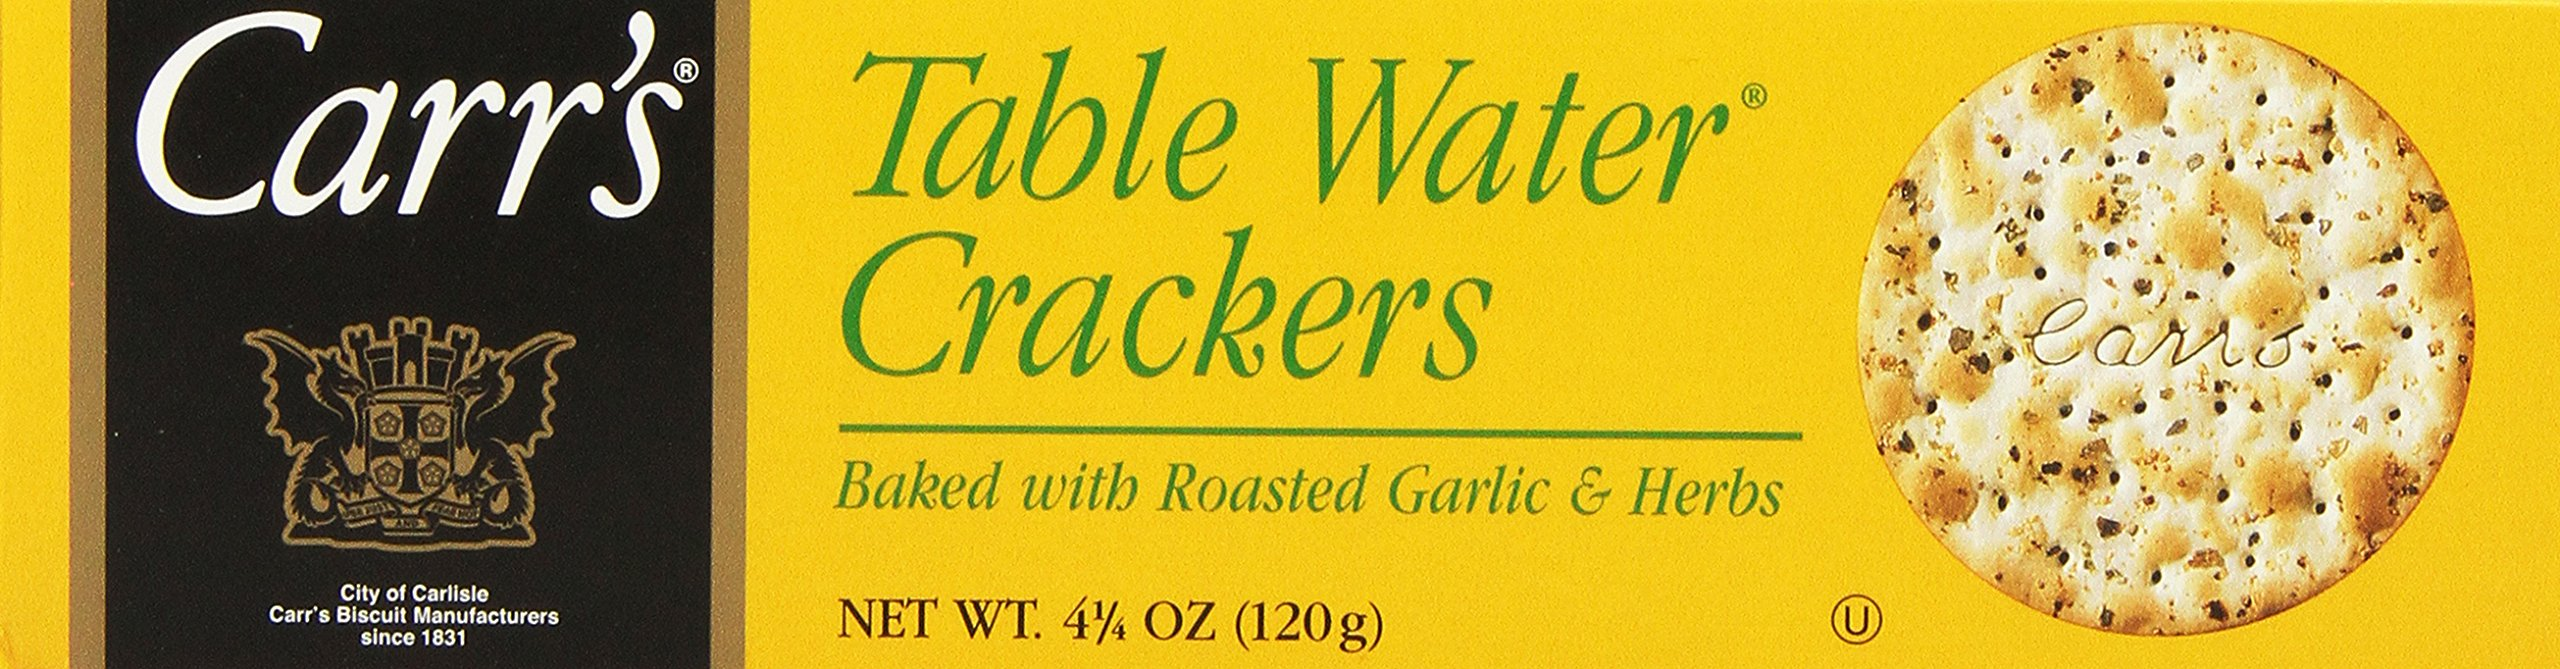 Carr's Table Water Crackers, Roasted Garlic & Herbs, 4.25-Ounce Boxes (Pack of 6) by Carr's